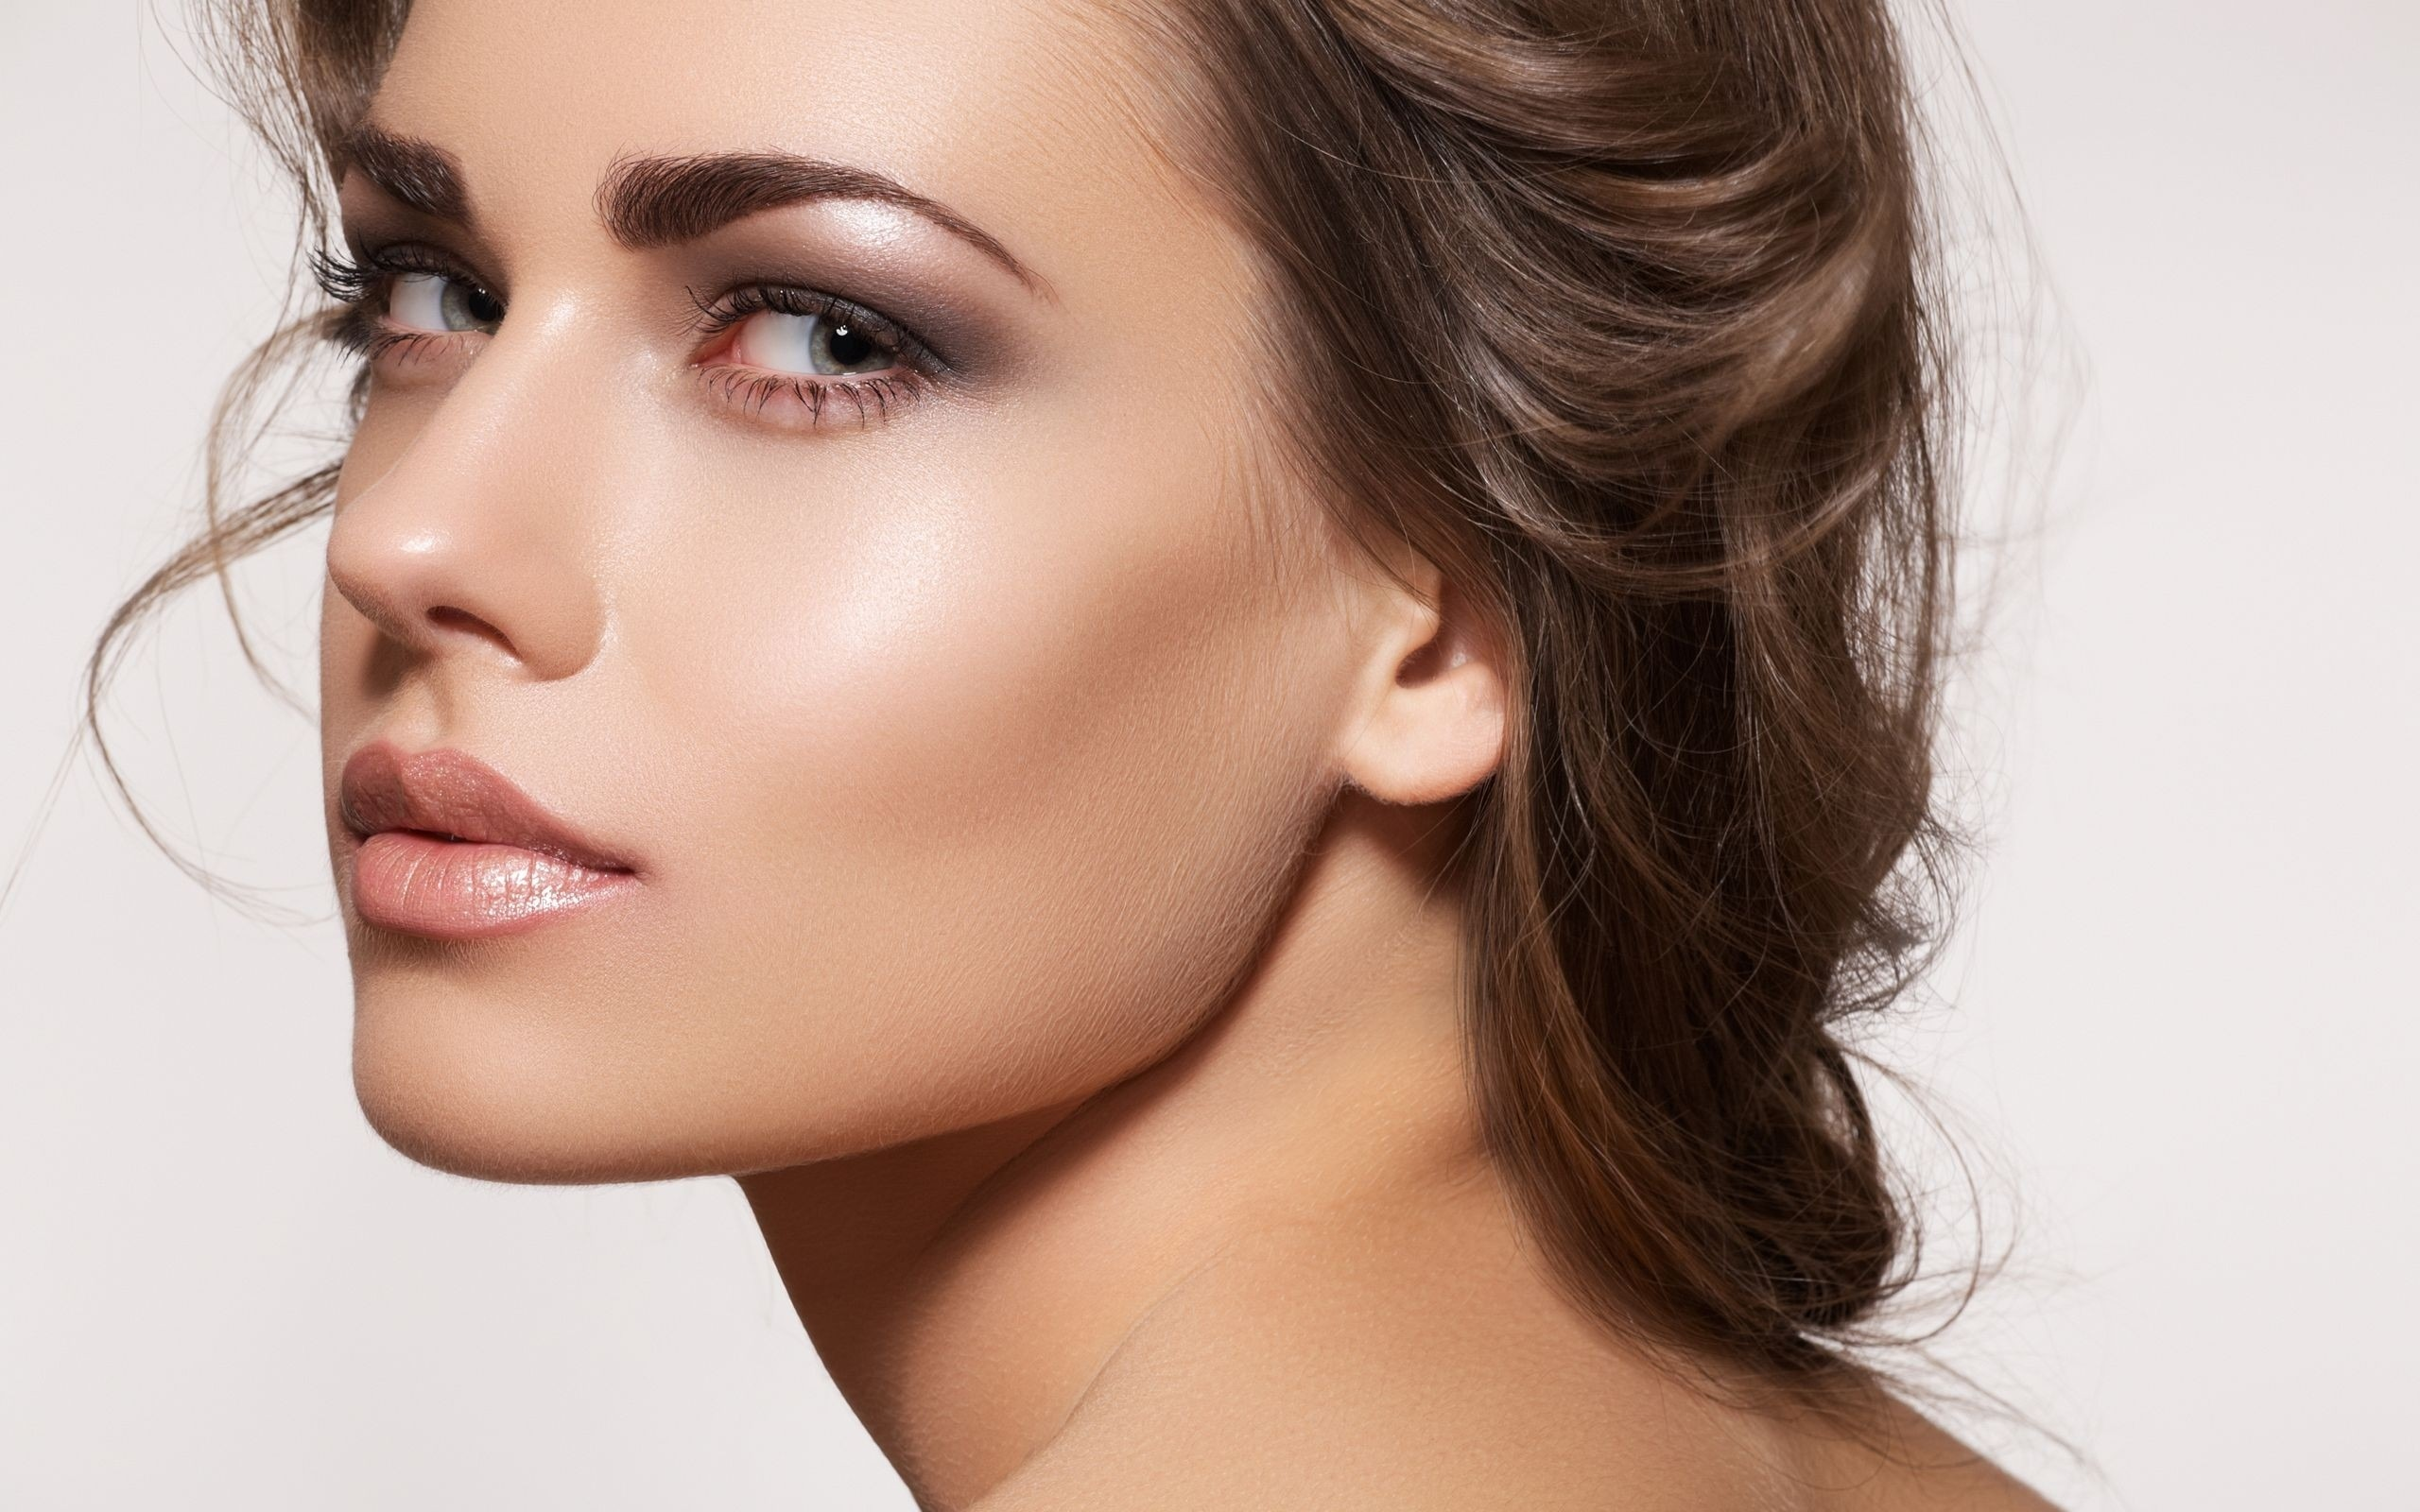 Chirurgie orthognathique chirurgie maxillo facial bruxelles waterloo